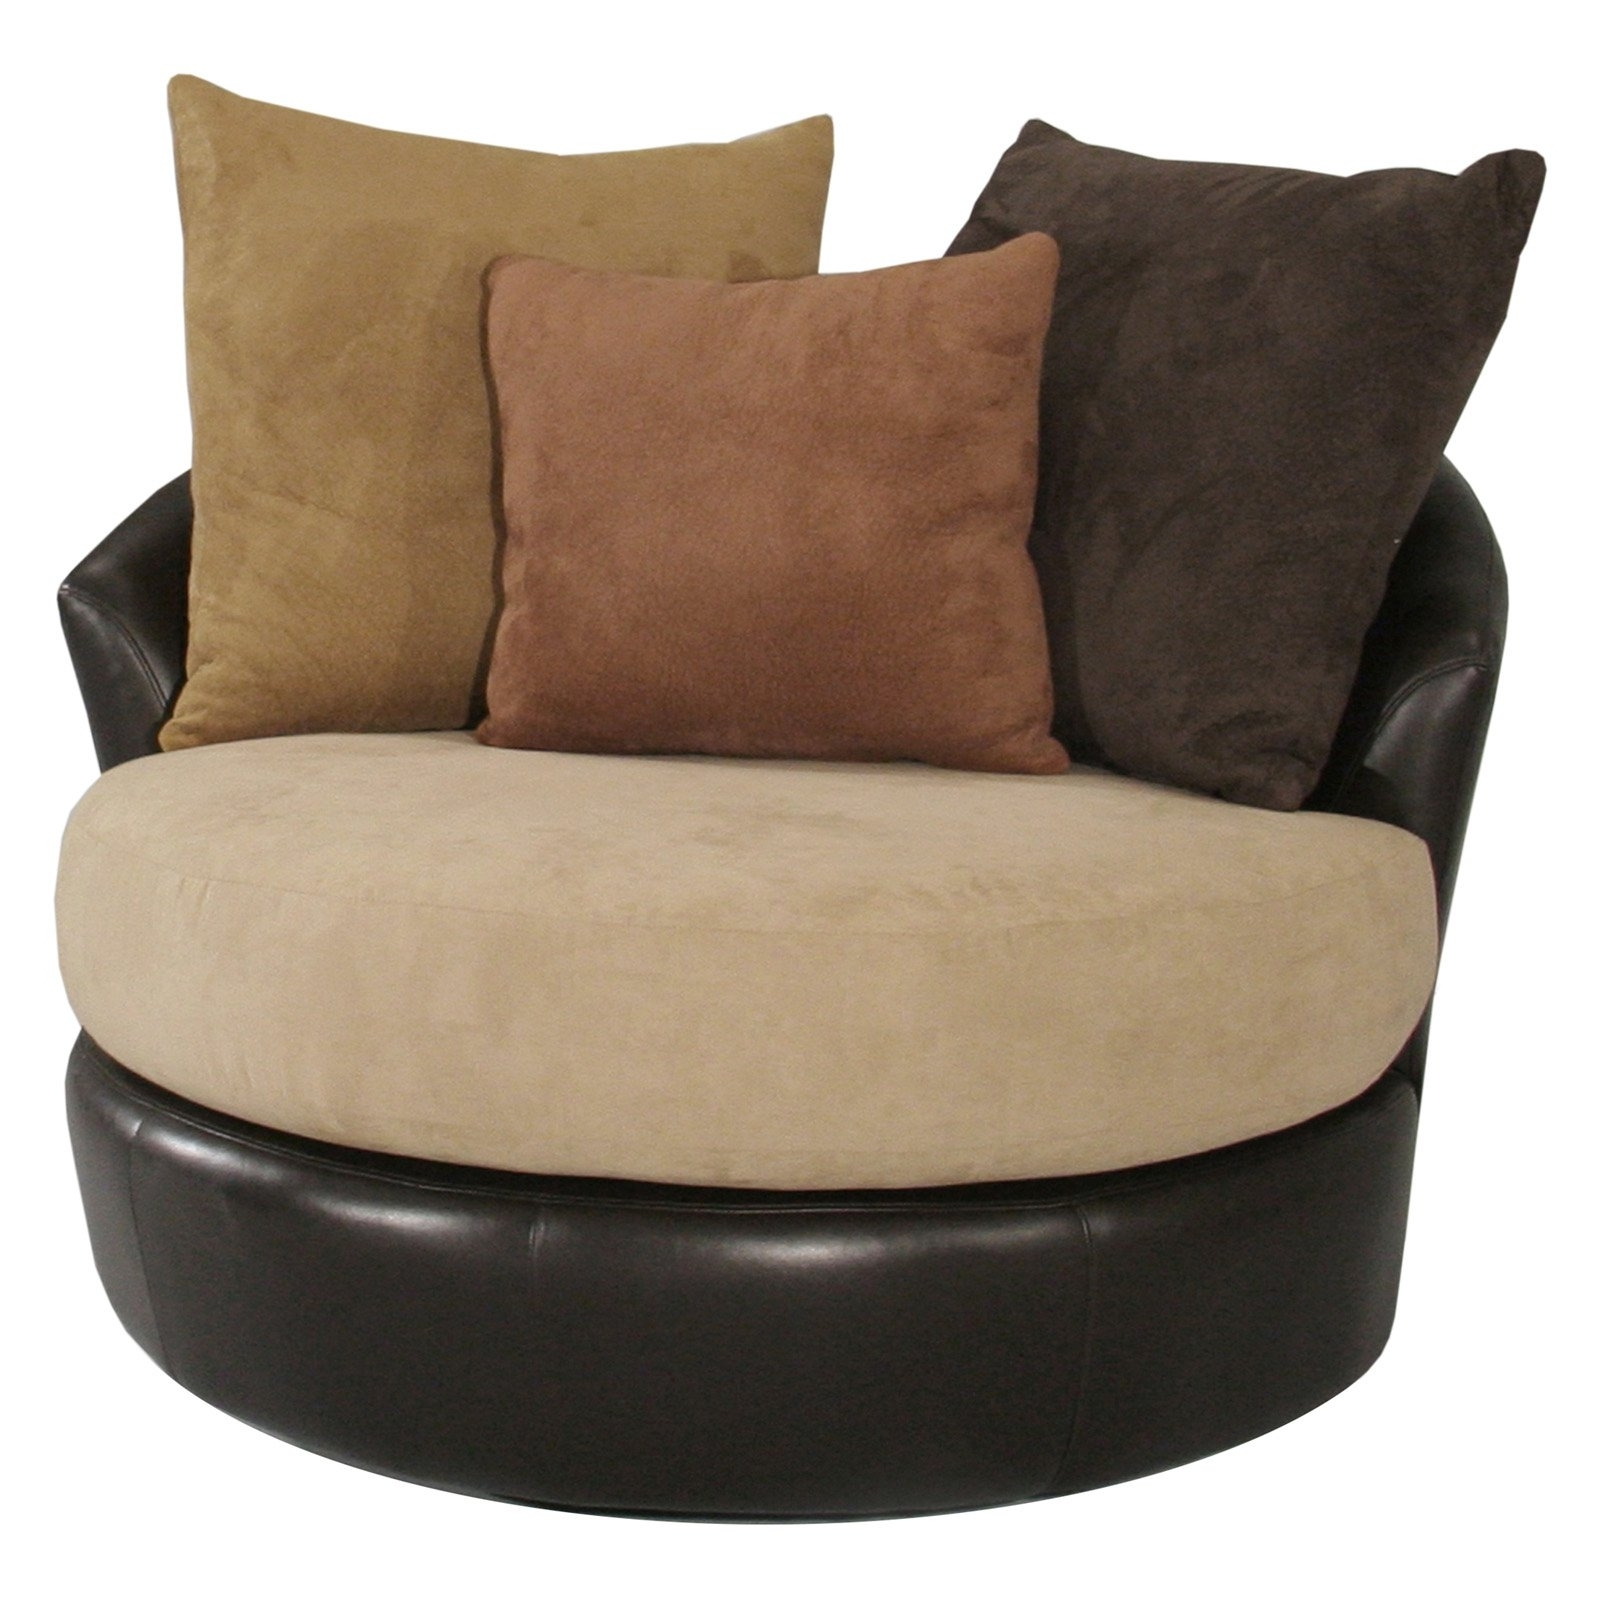 Trendy Outstanding Round Chaise Lounge Designs – Decofurnish Inside Round Chaises (View 7 of 15)